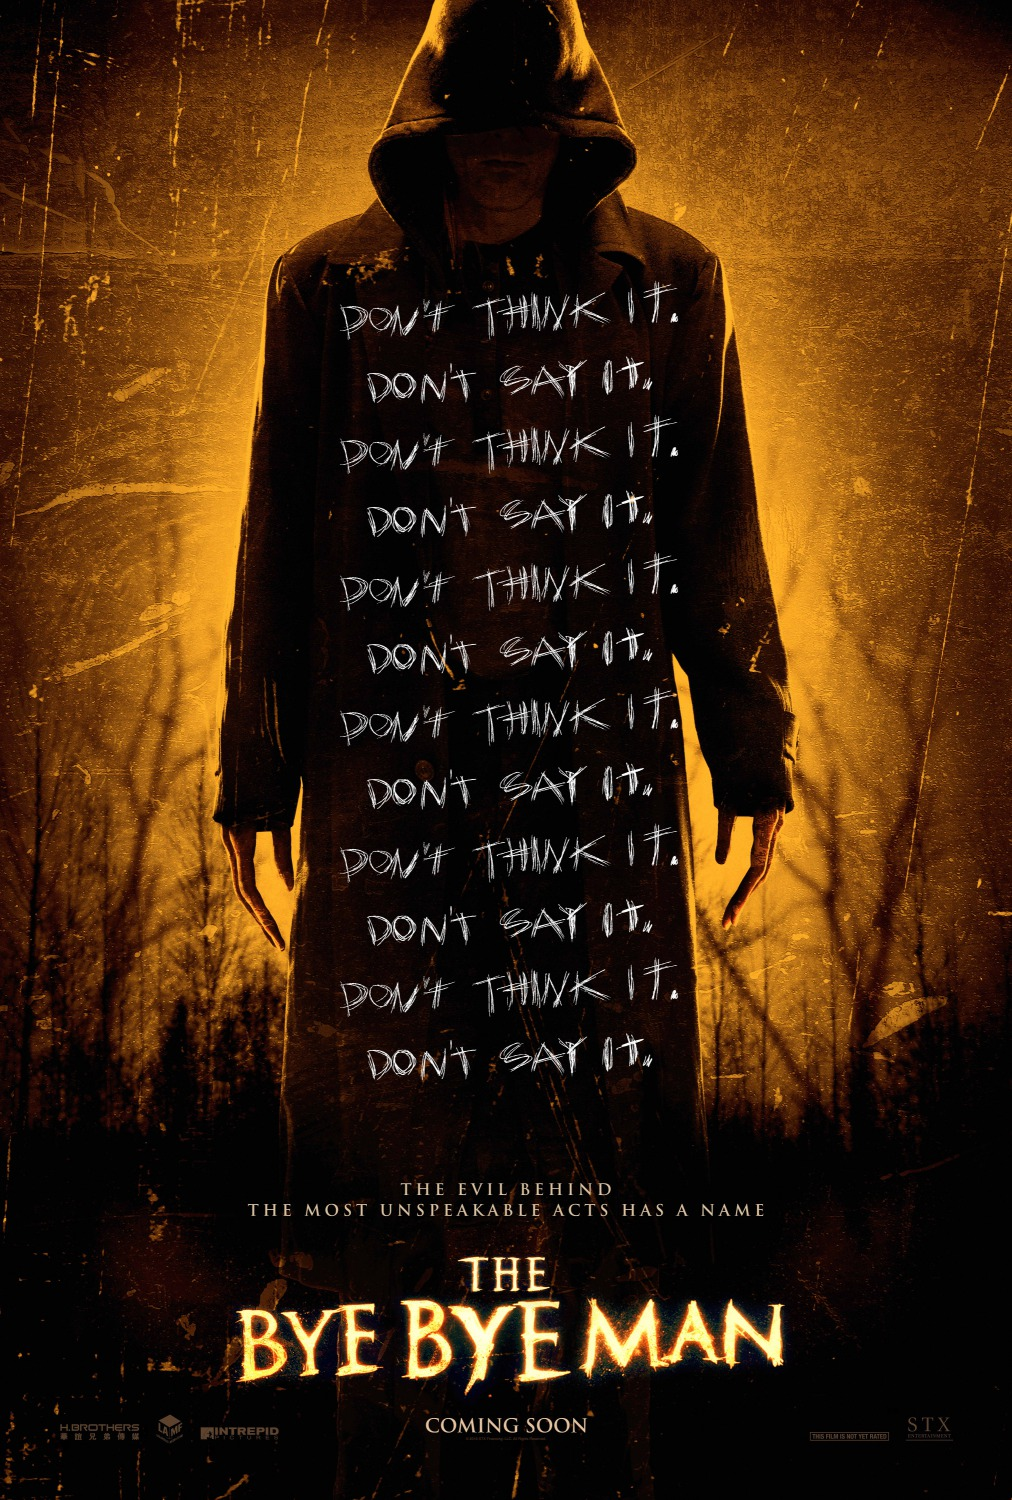 The Bye Bye Man film review – Don't think it, don't say it, don't see it?